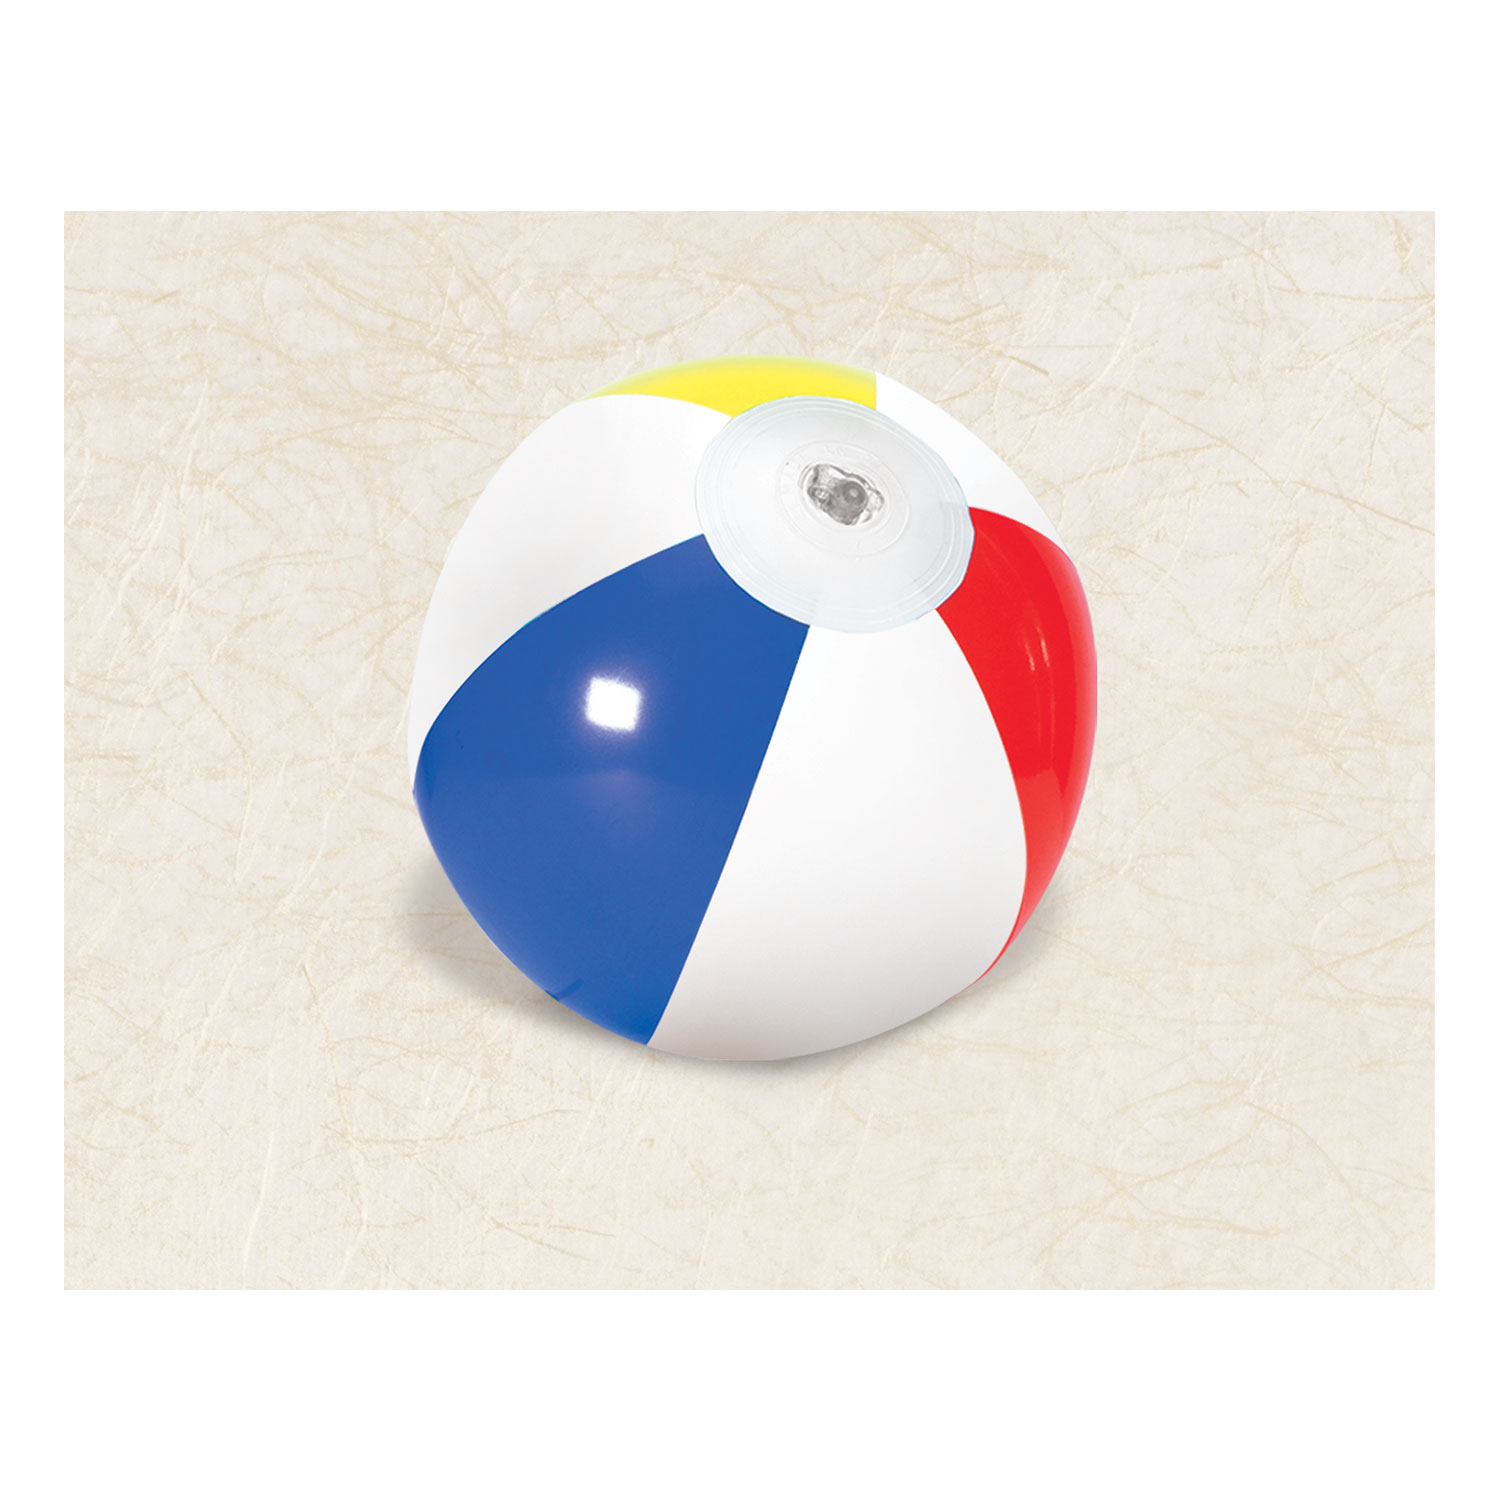 door ball products wreath beach decor hanger party summer decorations pool supplies